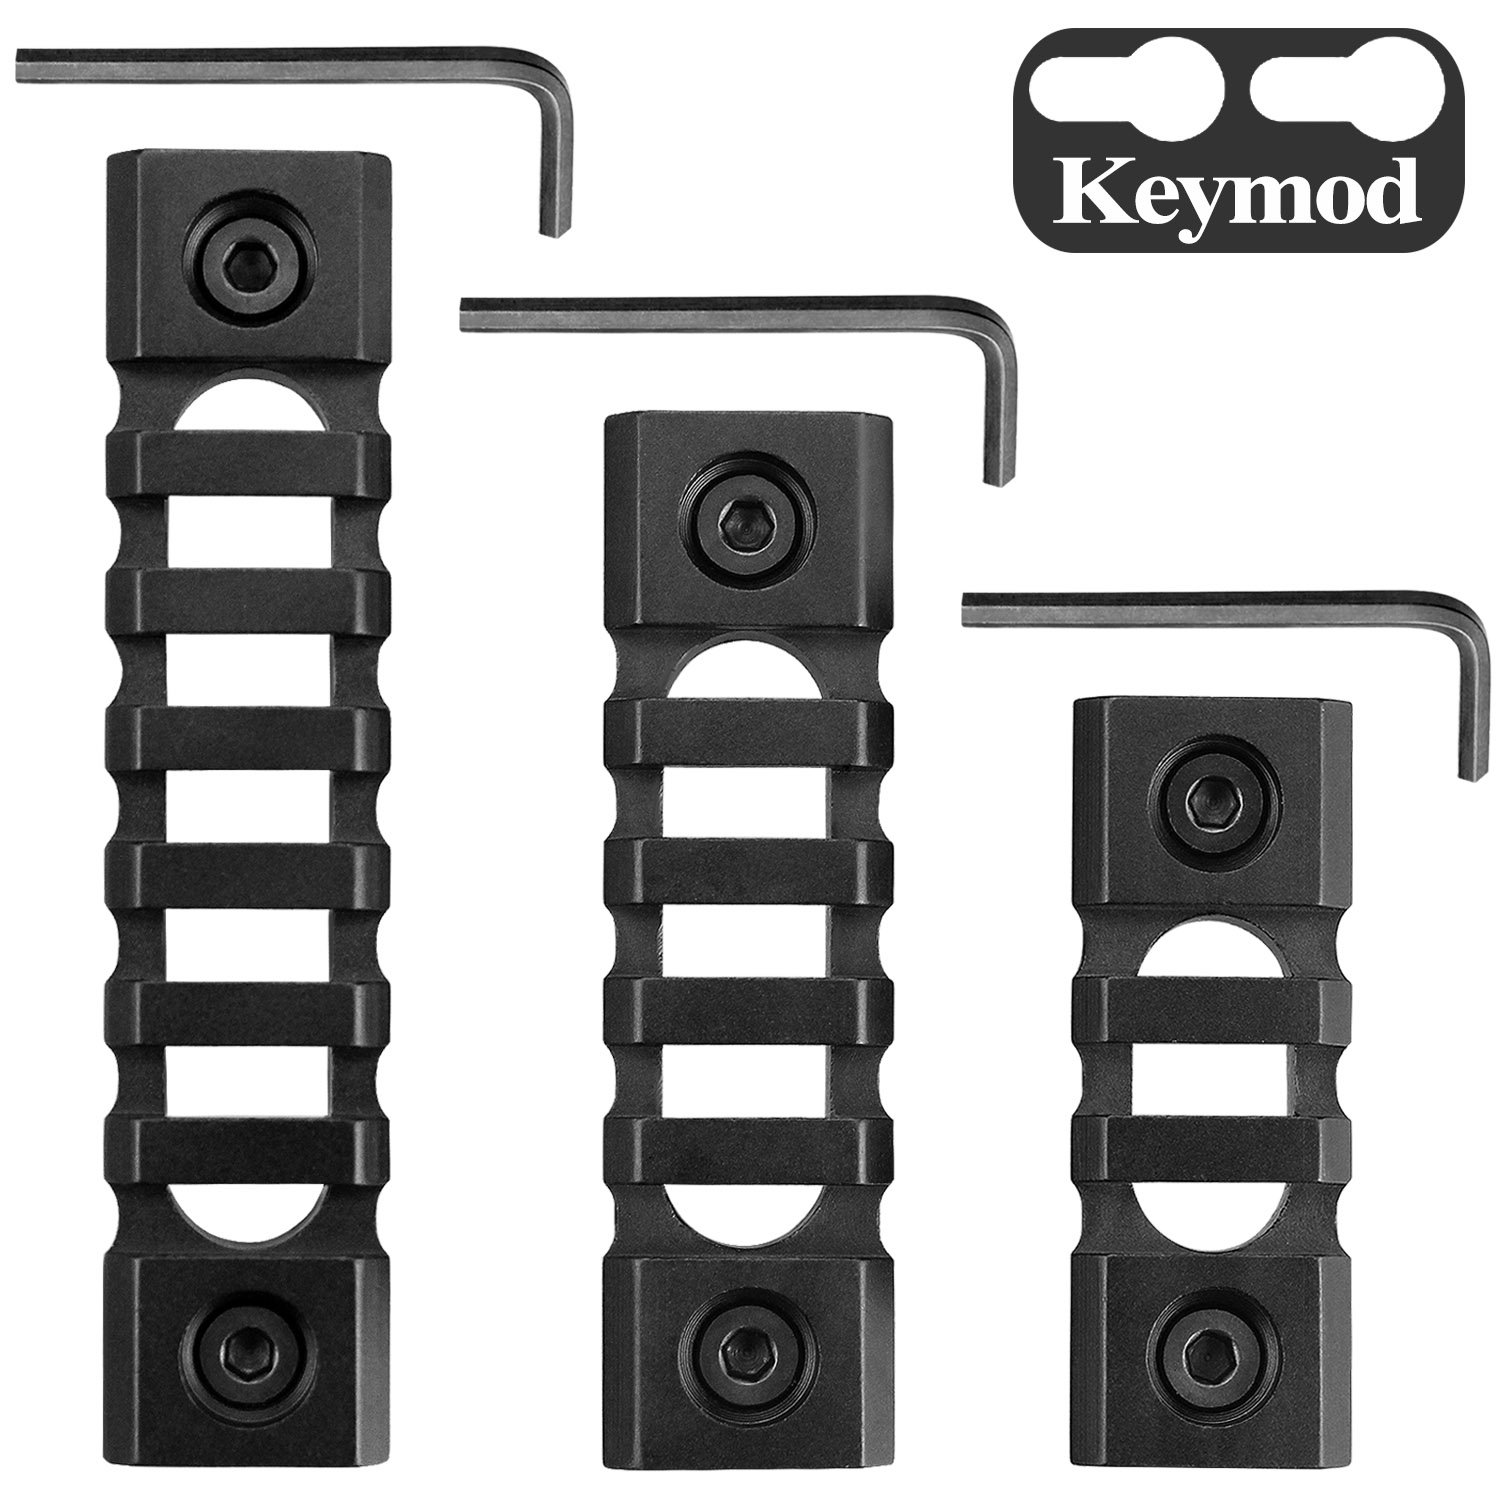 Monoki Keymod Picatinny Rail Sections, 3-Slot 5-Slot 7-Slot Lightweight Picatinny Rail Section for Keymod Handguard Mount Rail System with 3 Allen Wrench & Solid-Style, 3 Pack (3/5/7-Slot)